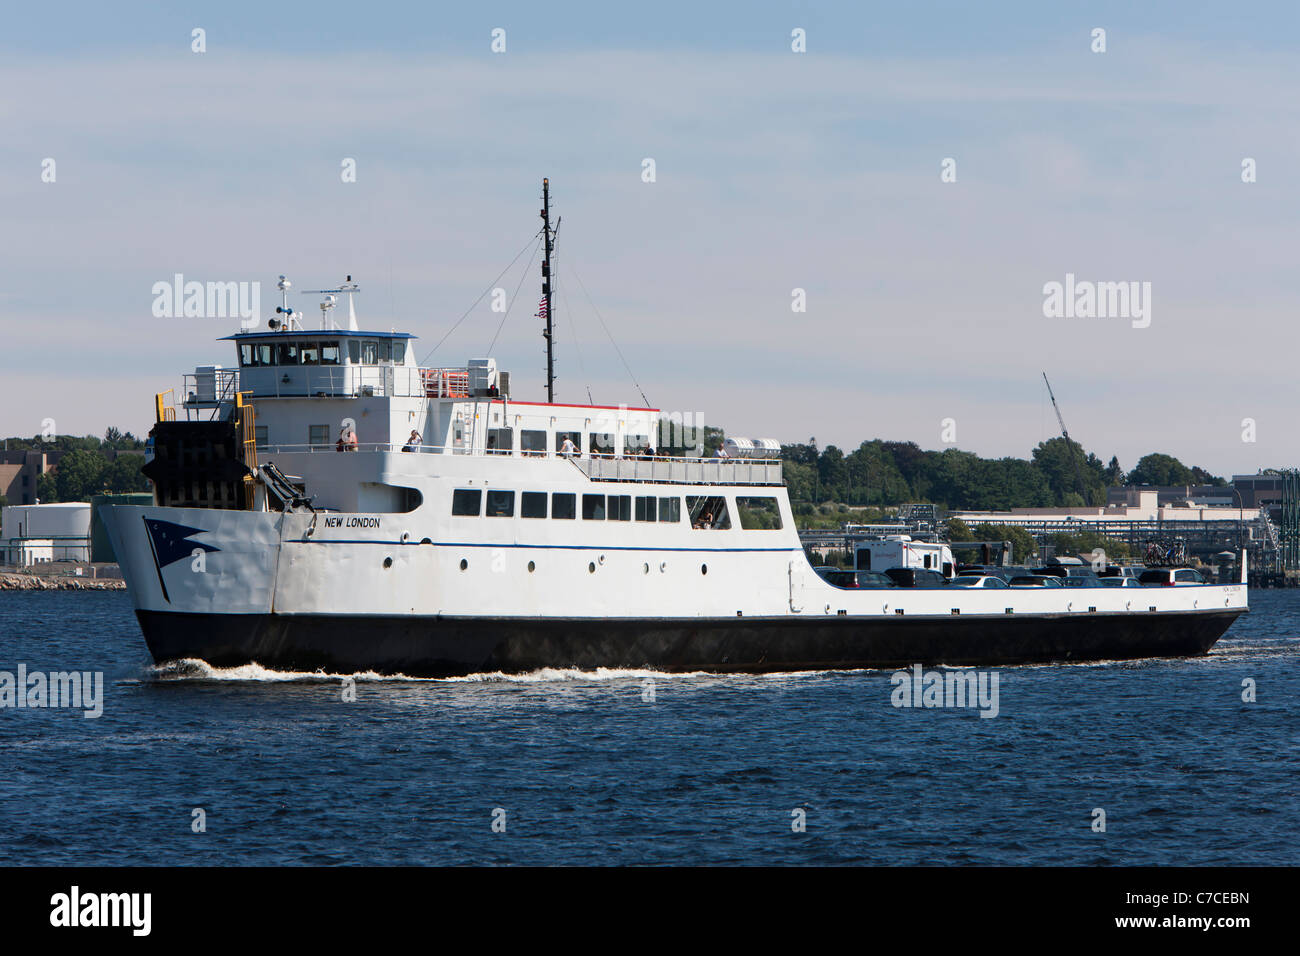 Cross Sound Ferry vessel New London on the Thames River heading inbound to New London, Connecticut. - Stock Image